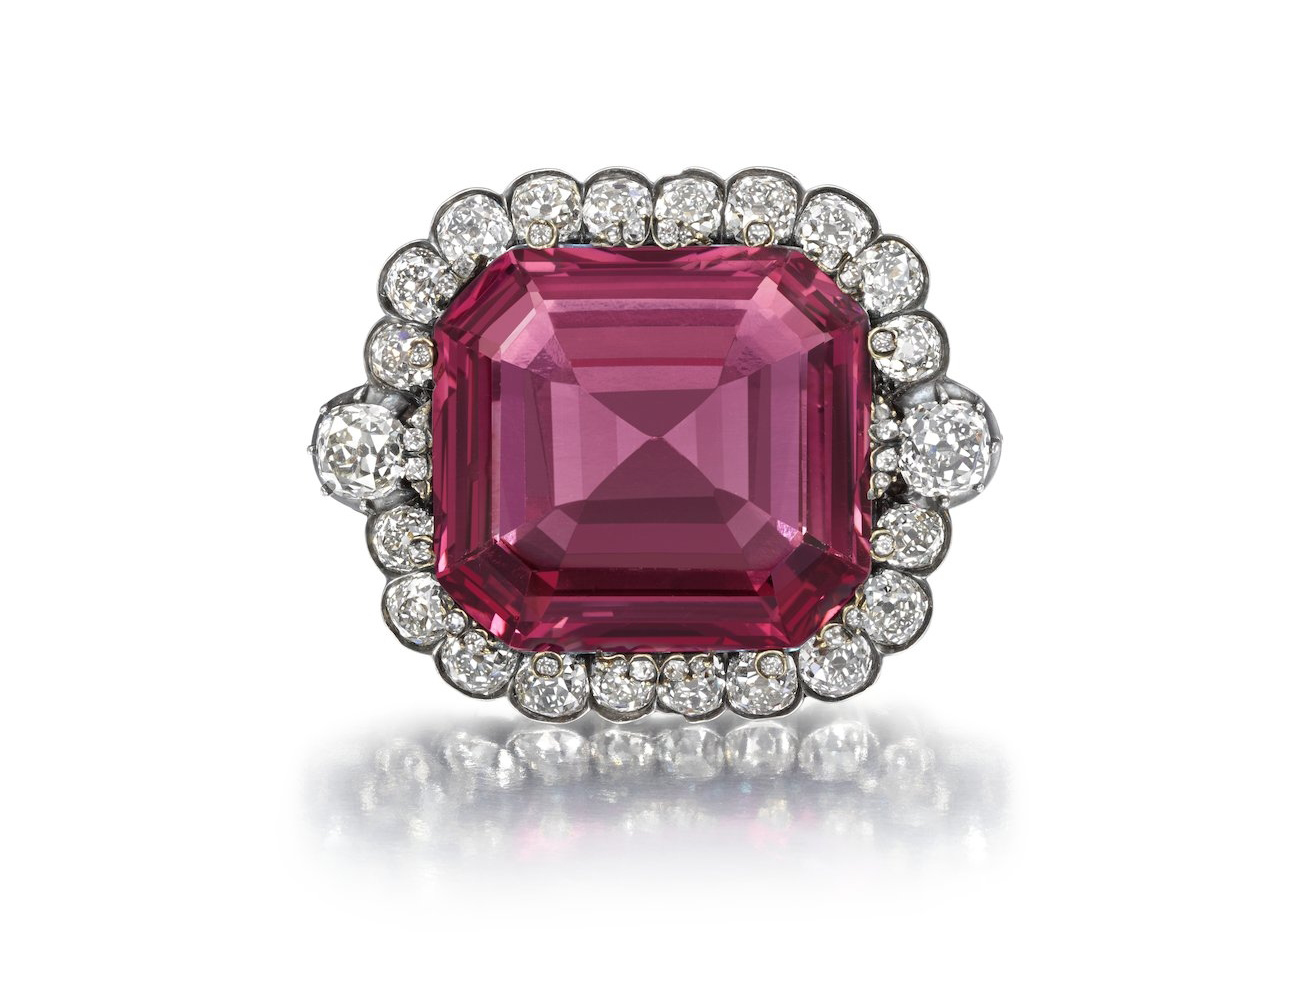 On 24 September 2015, the Hope Spinel sold for $1,464,661 ($29,217/ct), a new auction per carat record for spinel.